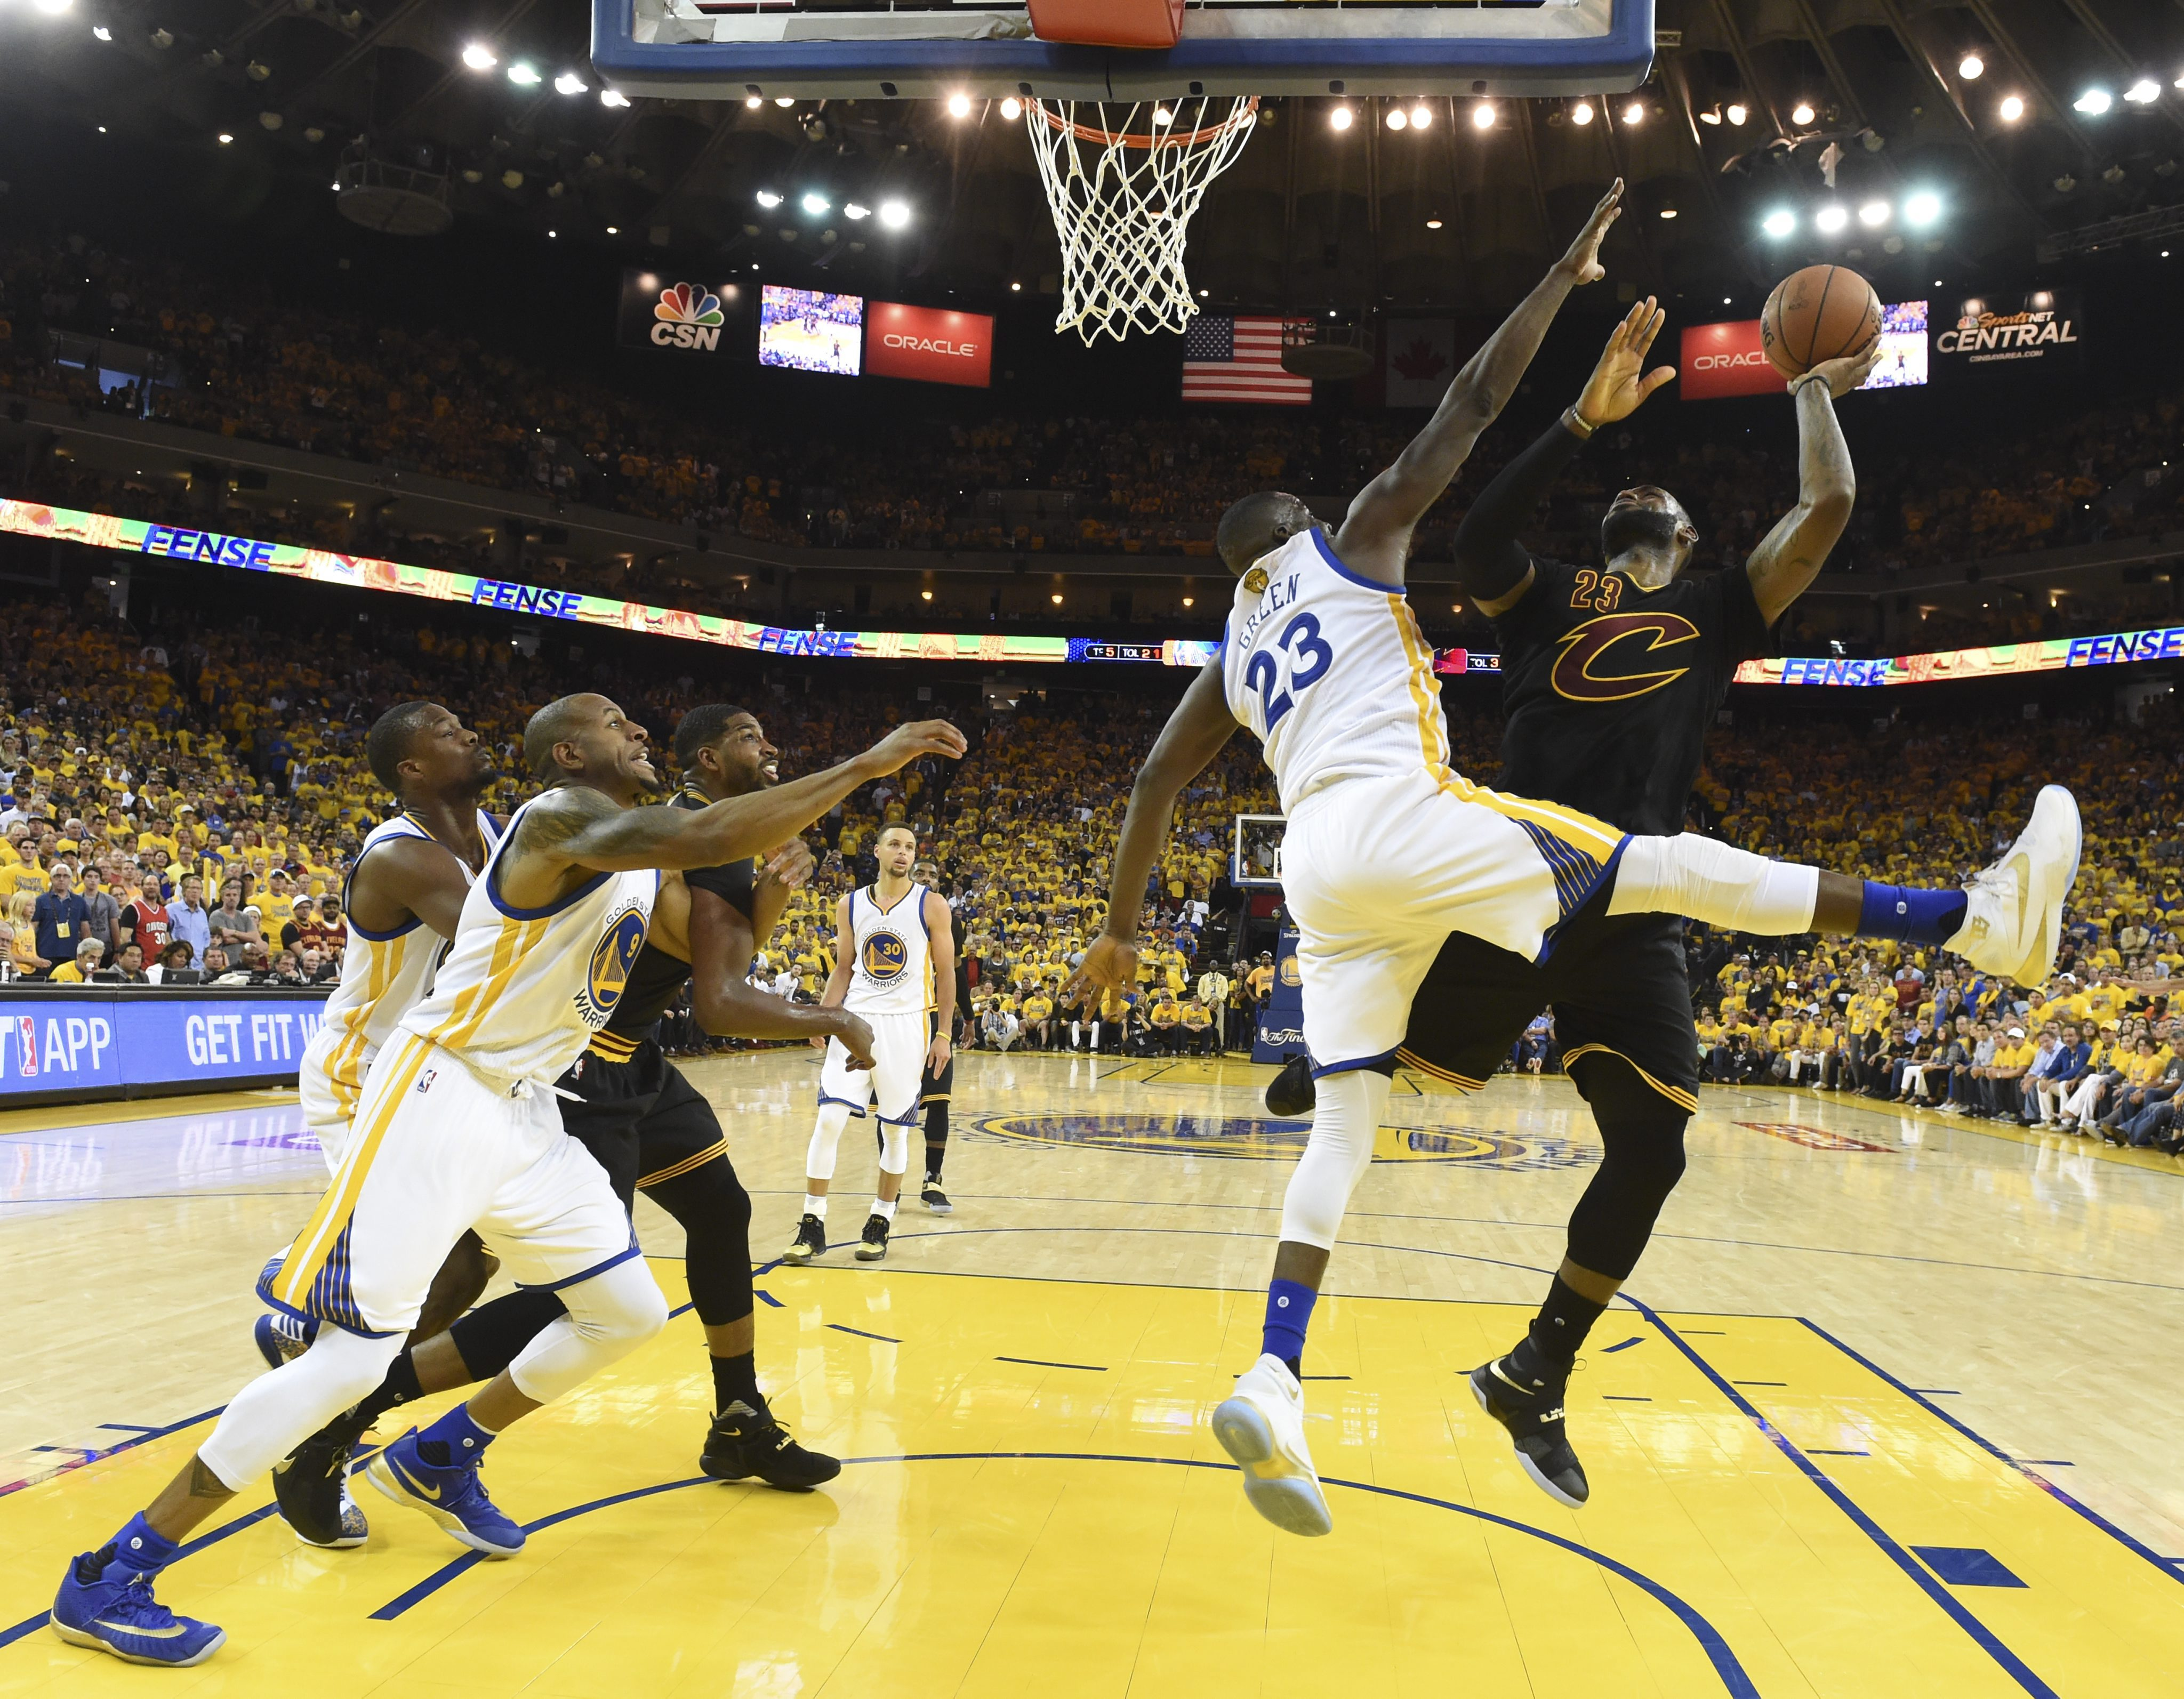 JGM10. Oakland (United States), 20/06/2016.- Cleveland Cavaliers forward LeBron James (R) shoots as Golden State Warriors forward Draymond Green (C) defends during their NBA Finals game seven at Oracle Arena in Oakland, California, USA, 19 June 2016. (Baloncesto, Estados Unidos) EFE/EPA/BOB DONNAN/POOL CORBIS OUT